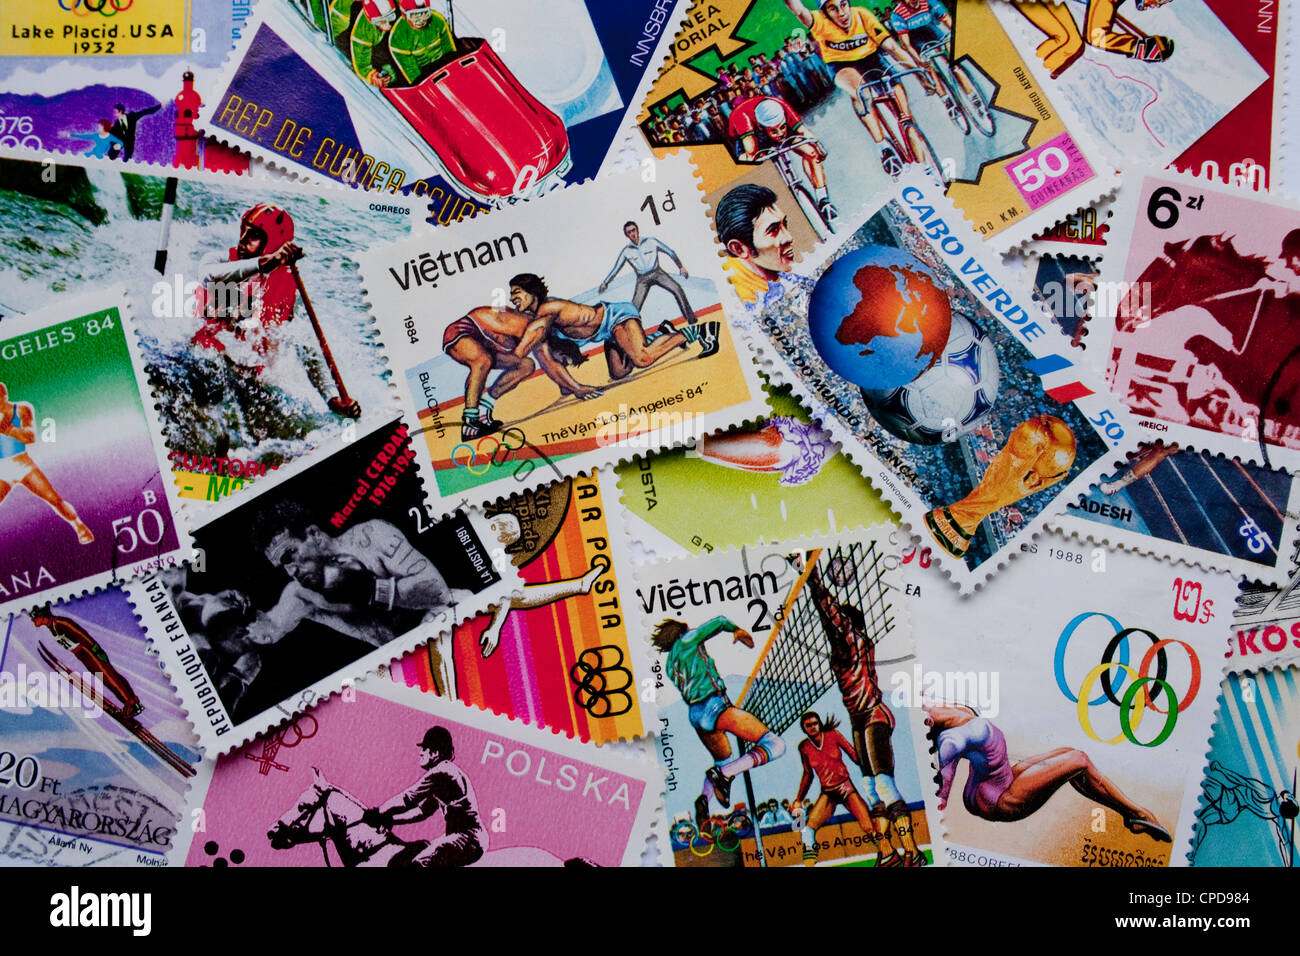 A collection of sport stamps from different countries, such as Vietnam, Cabo Verde, Korea, Poland and others - Stock Image